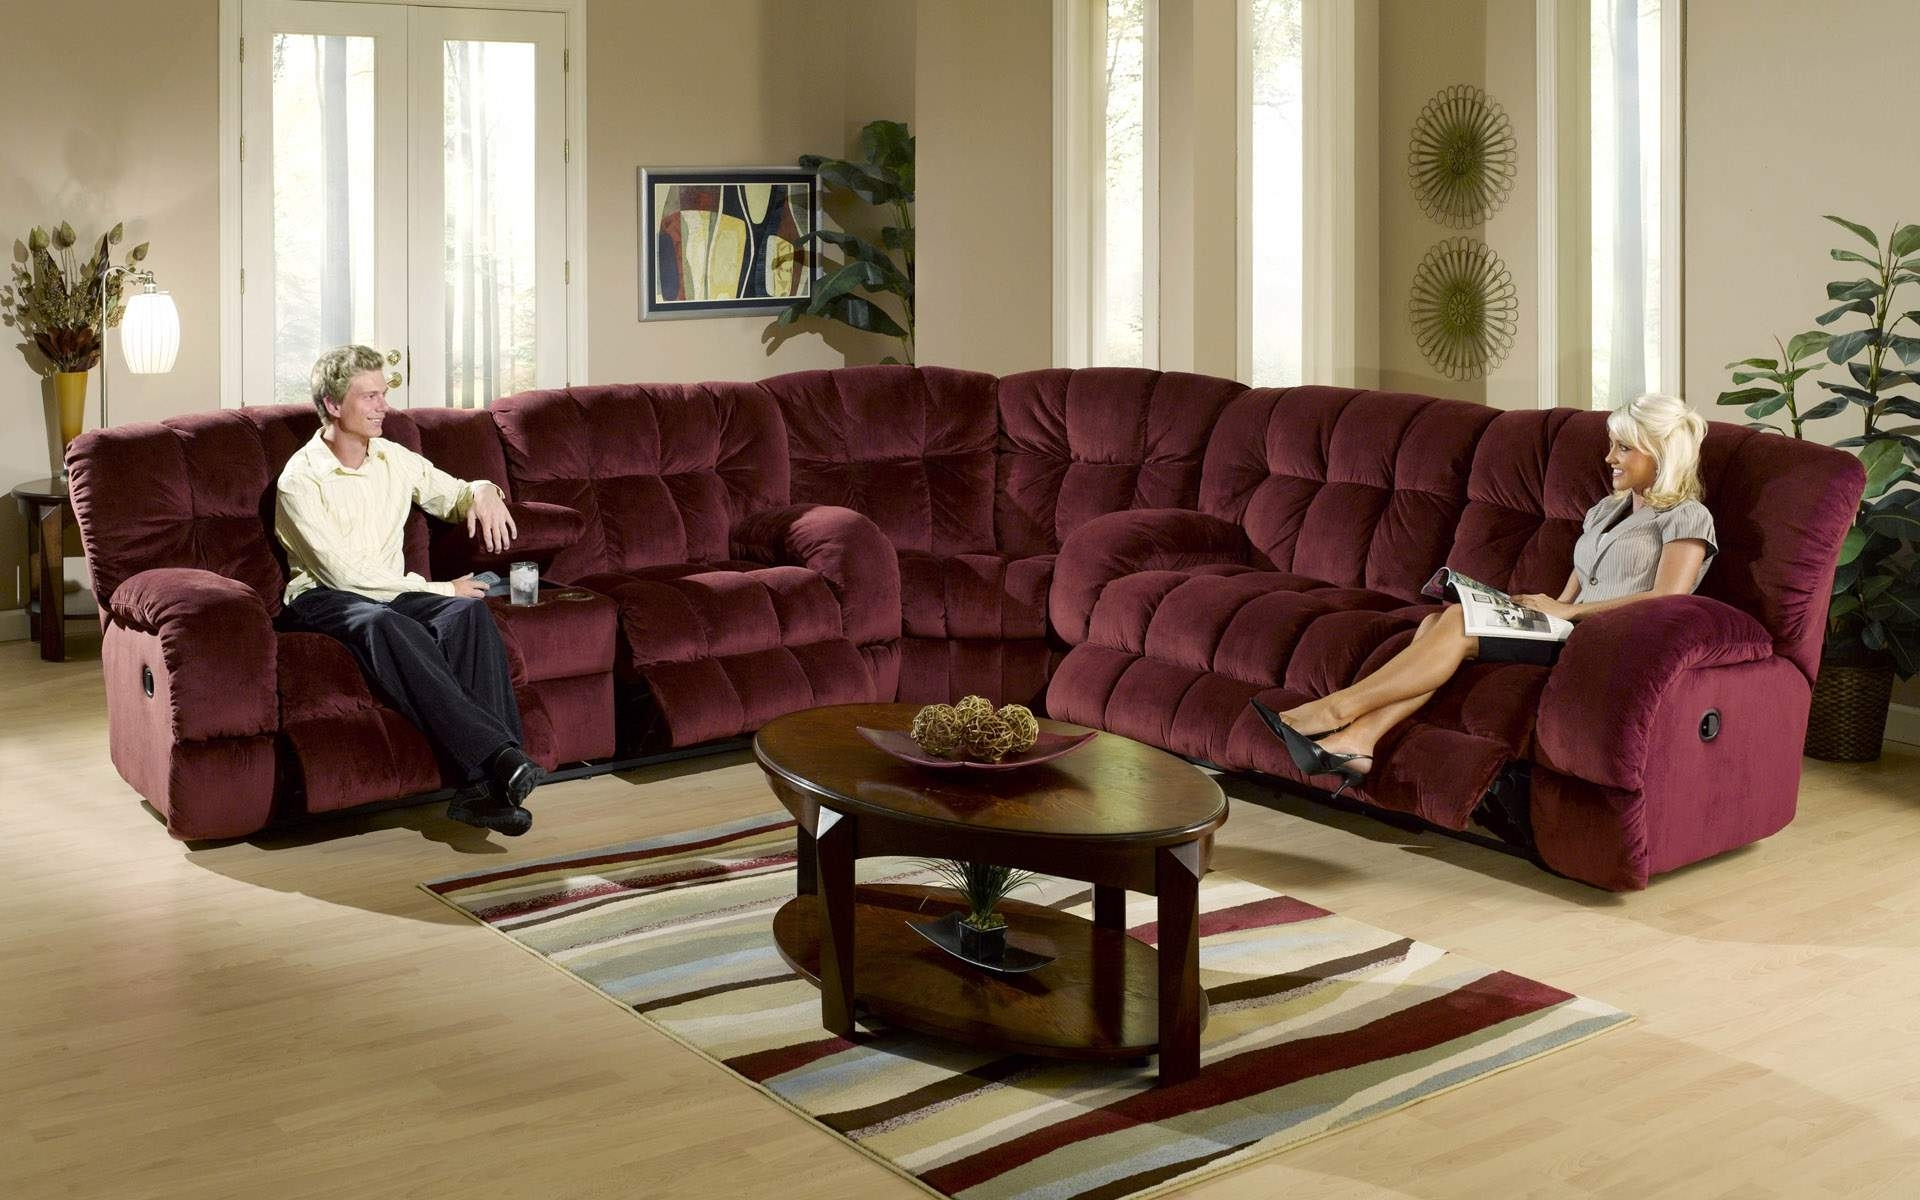 Good Quality Sectional Sofas Pertaining To Well Liked Good Quality Sectional Sofas – Cleanupflorida (View 11 of 20)